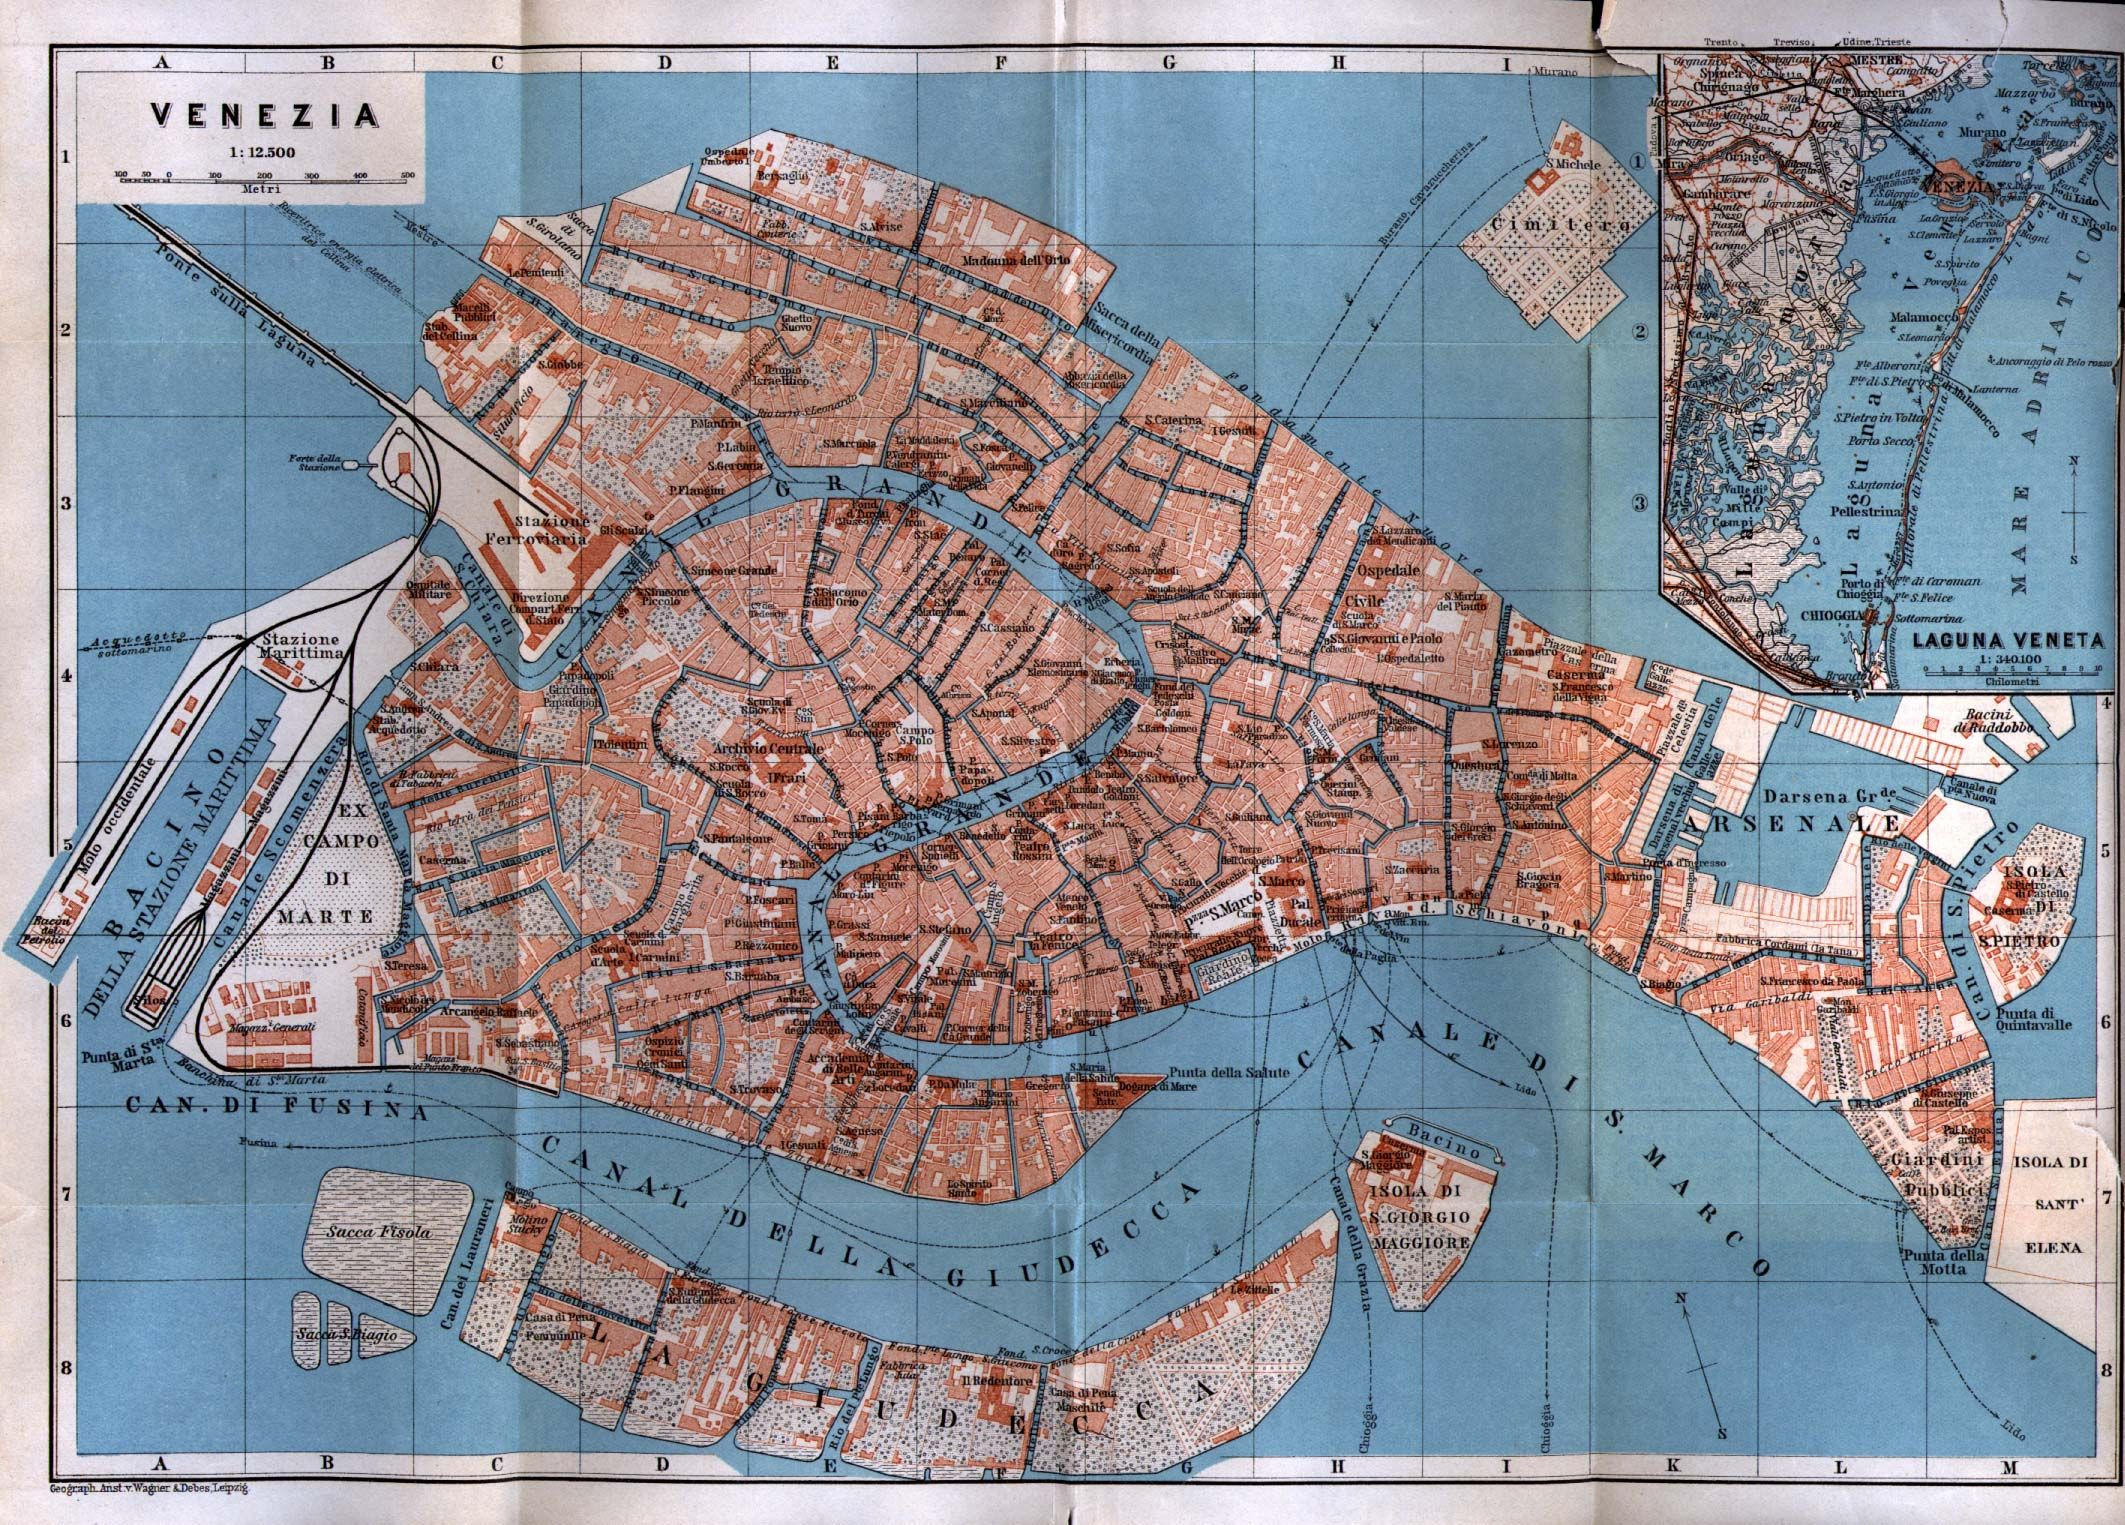 Map Of Italy Venice.Venezia Venice Map Italy 1913 From Baedeker S Northern Italy